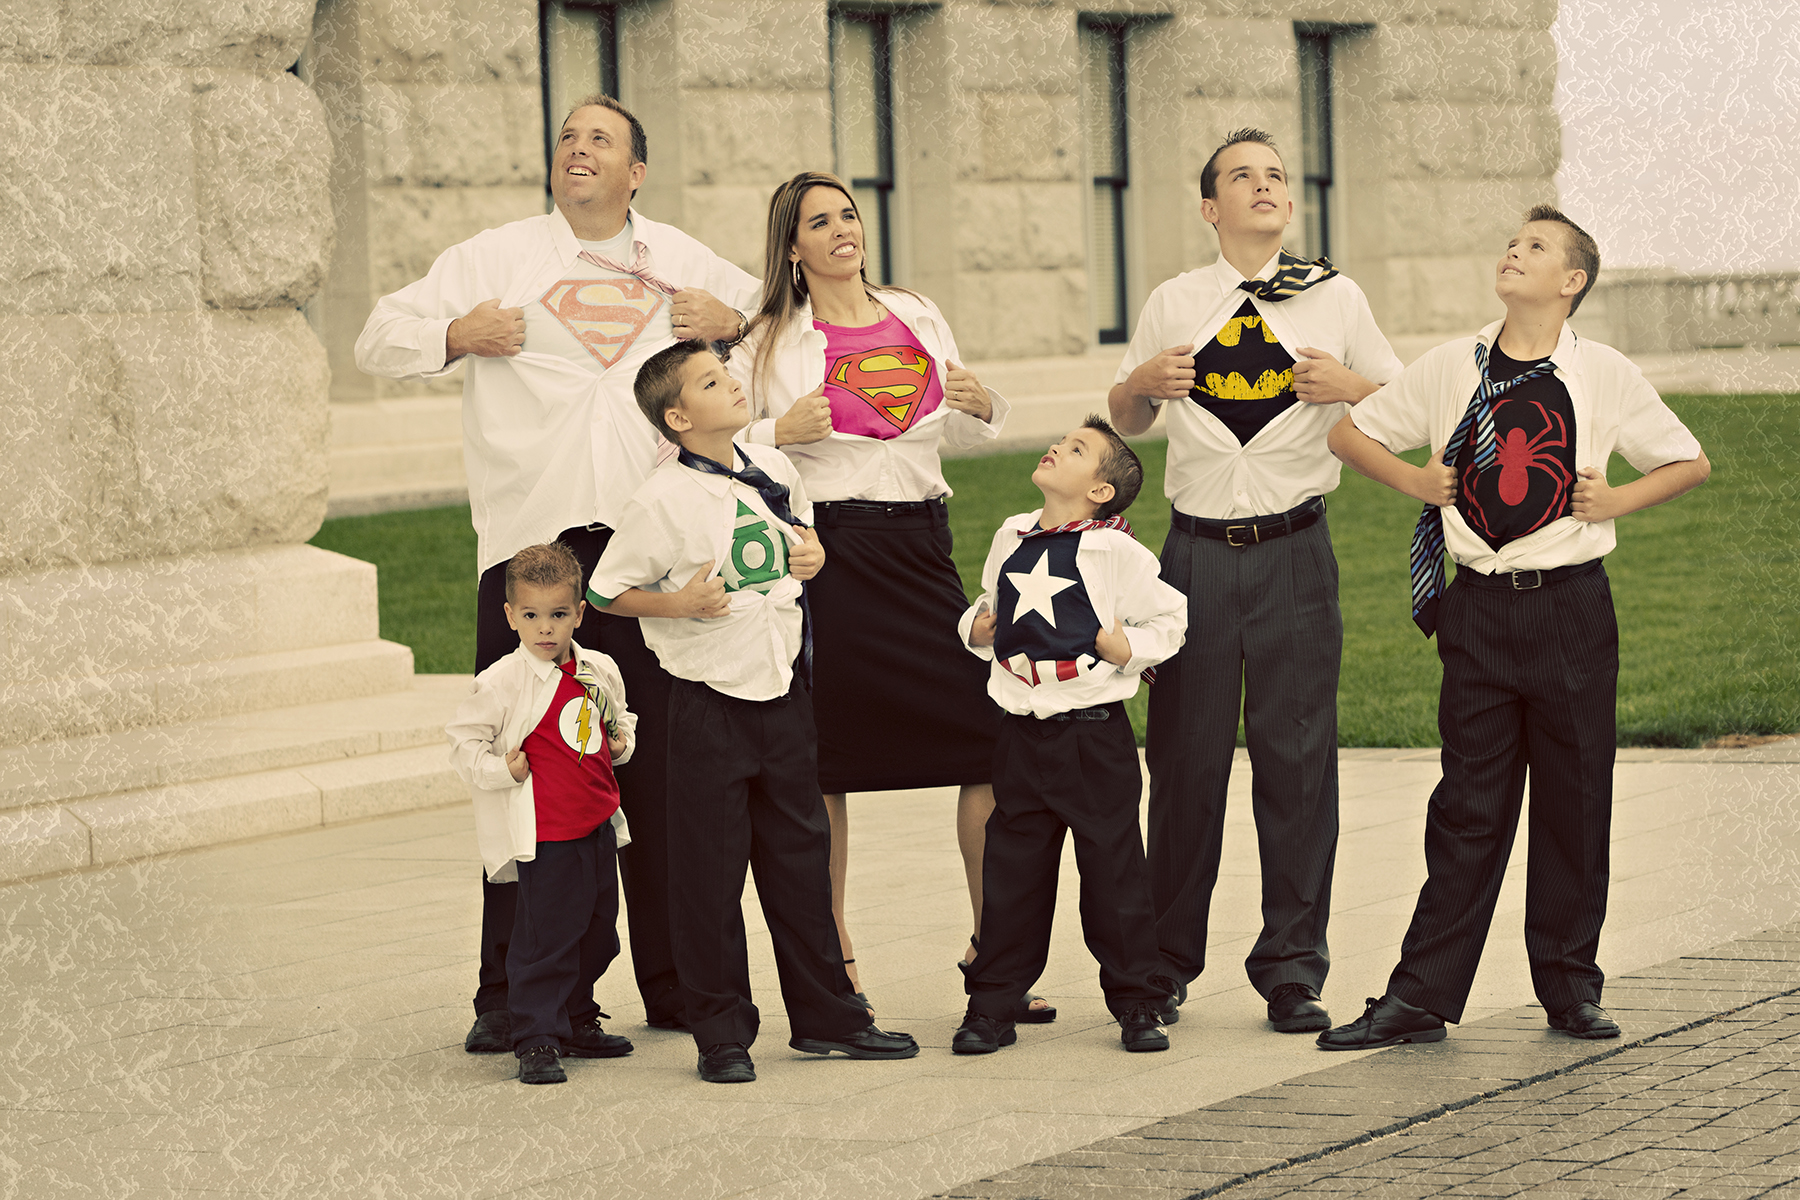 Utah Superhero Family Photos awesome fun